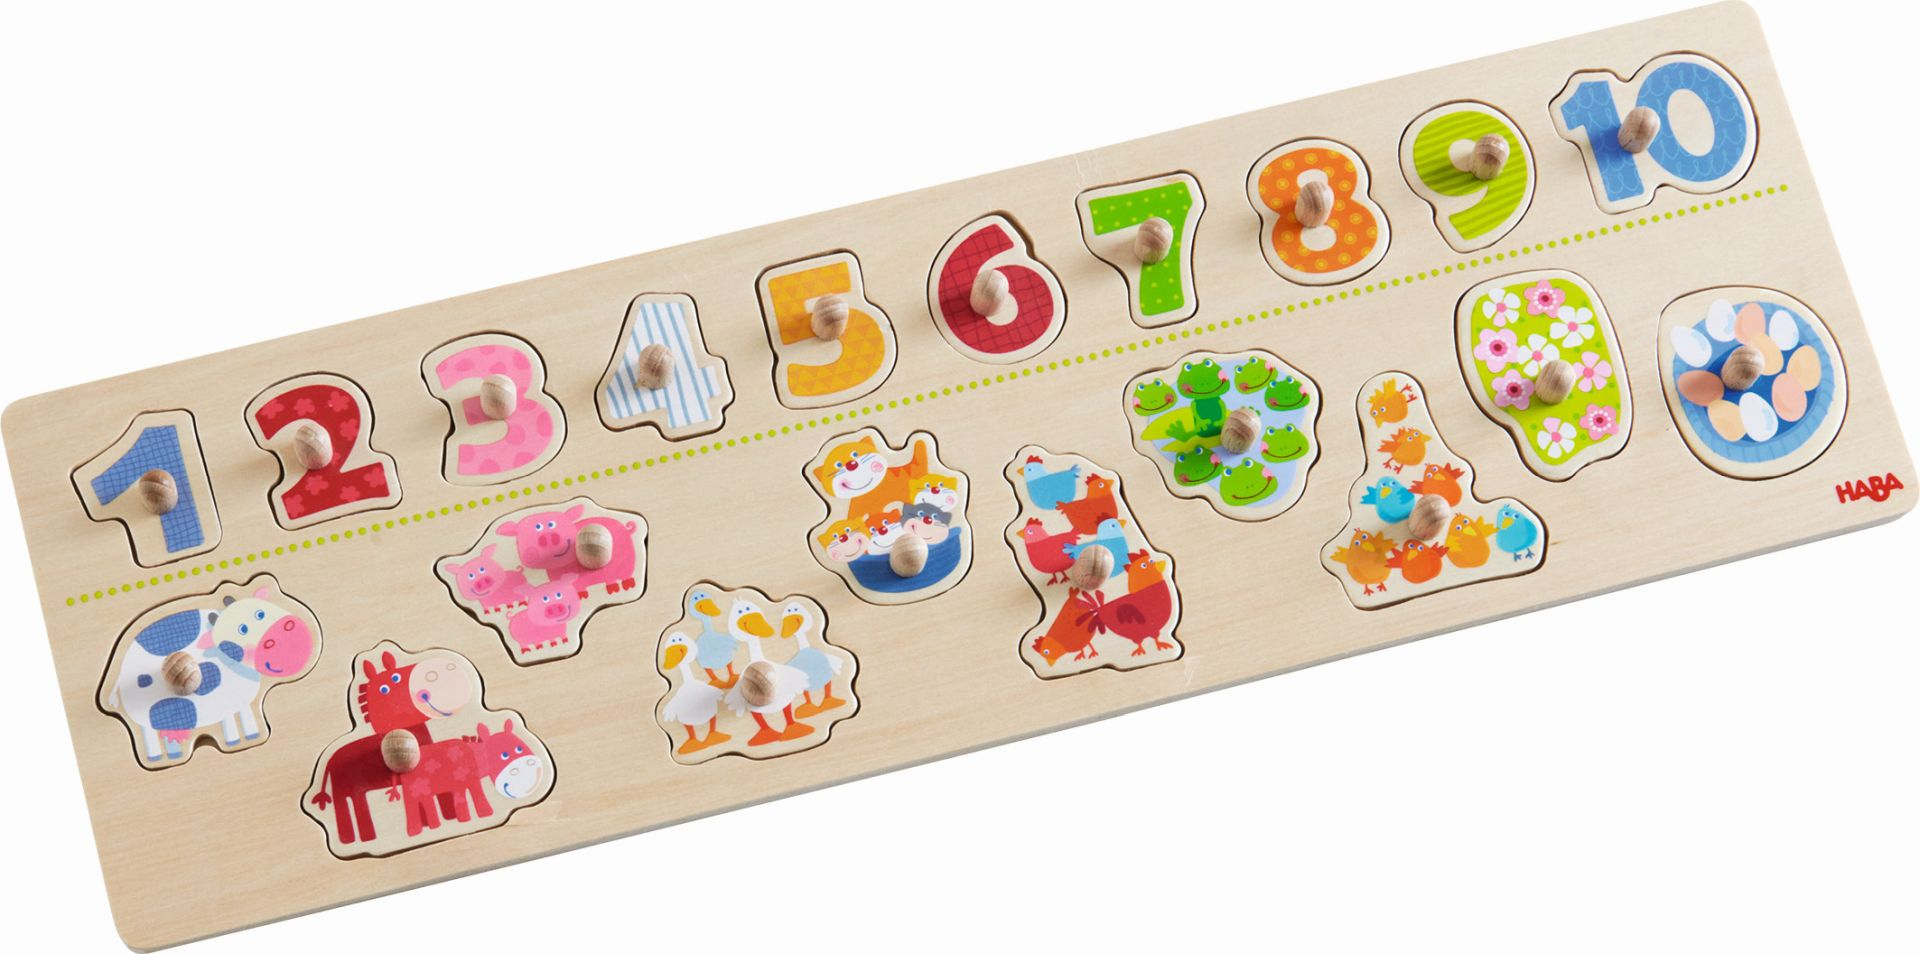 "Haba Clutching Puzzle ""Animals & Numbers""."